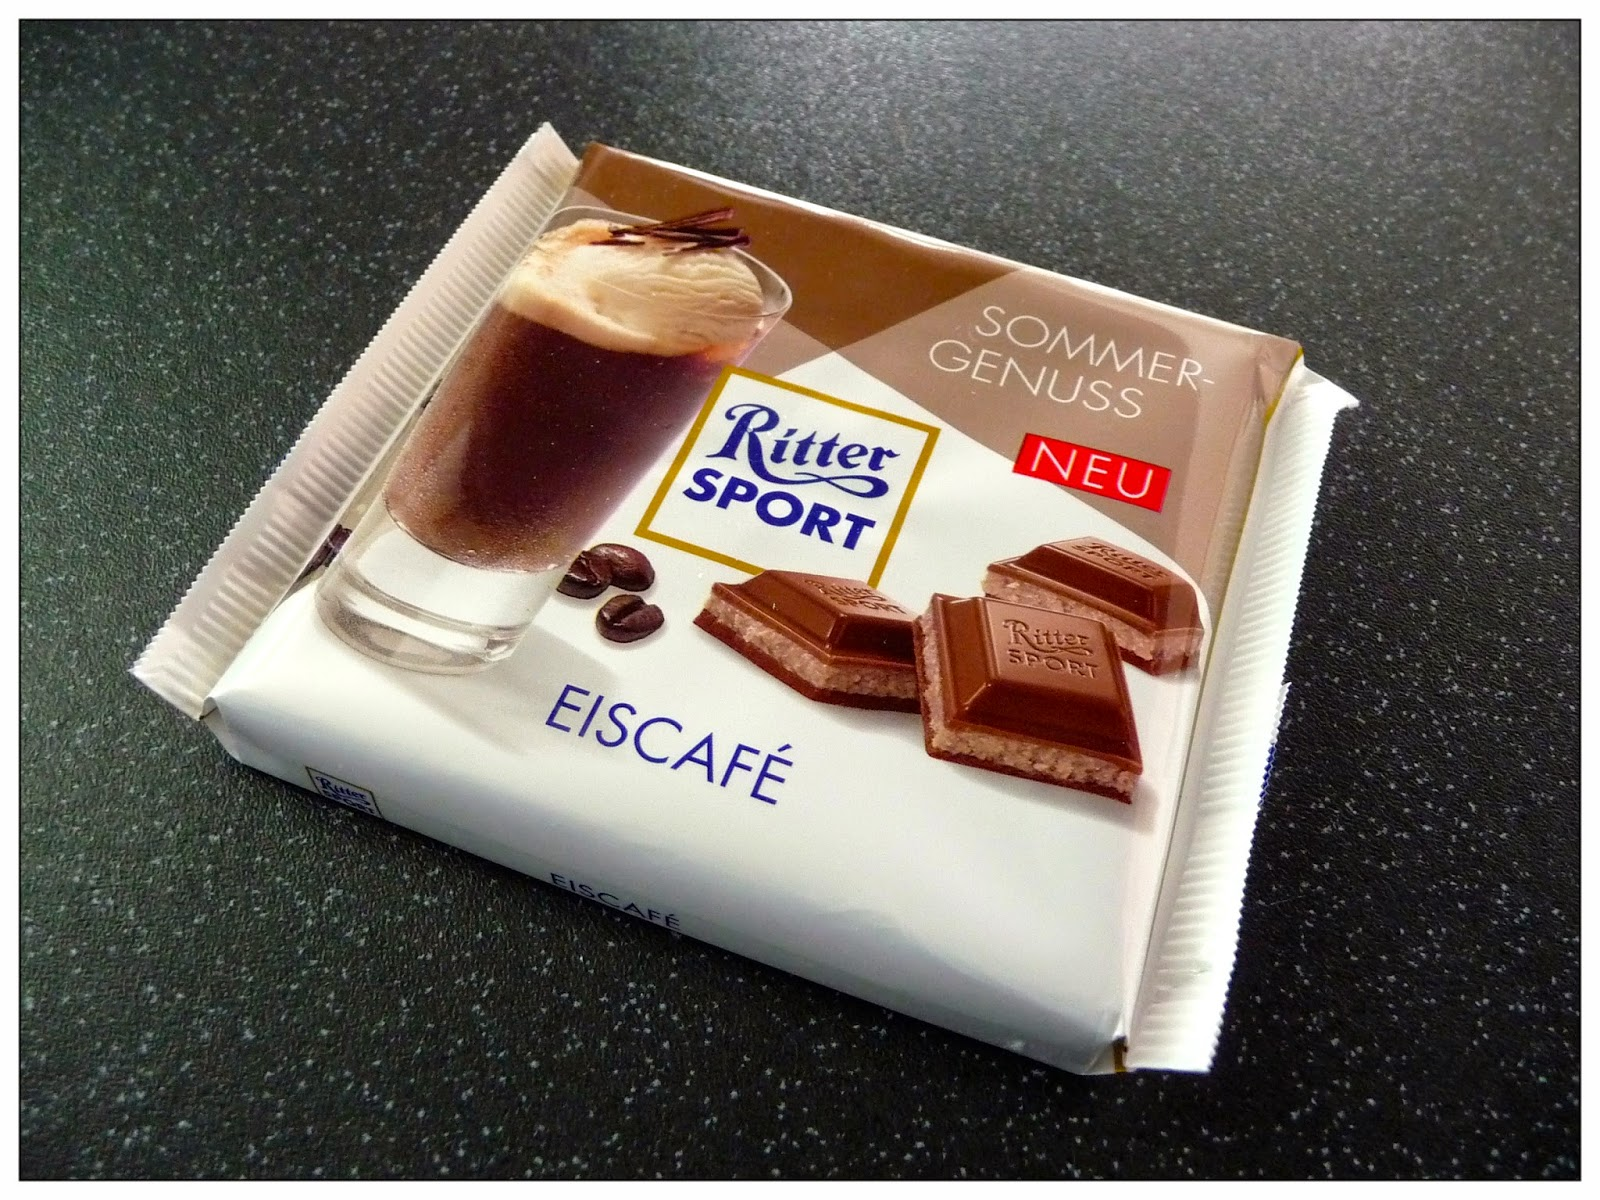 Ritter Sport Icecafe